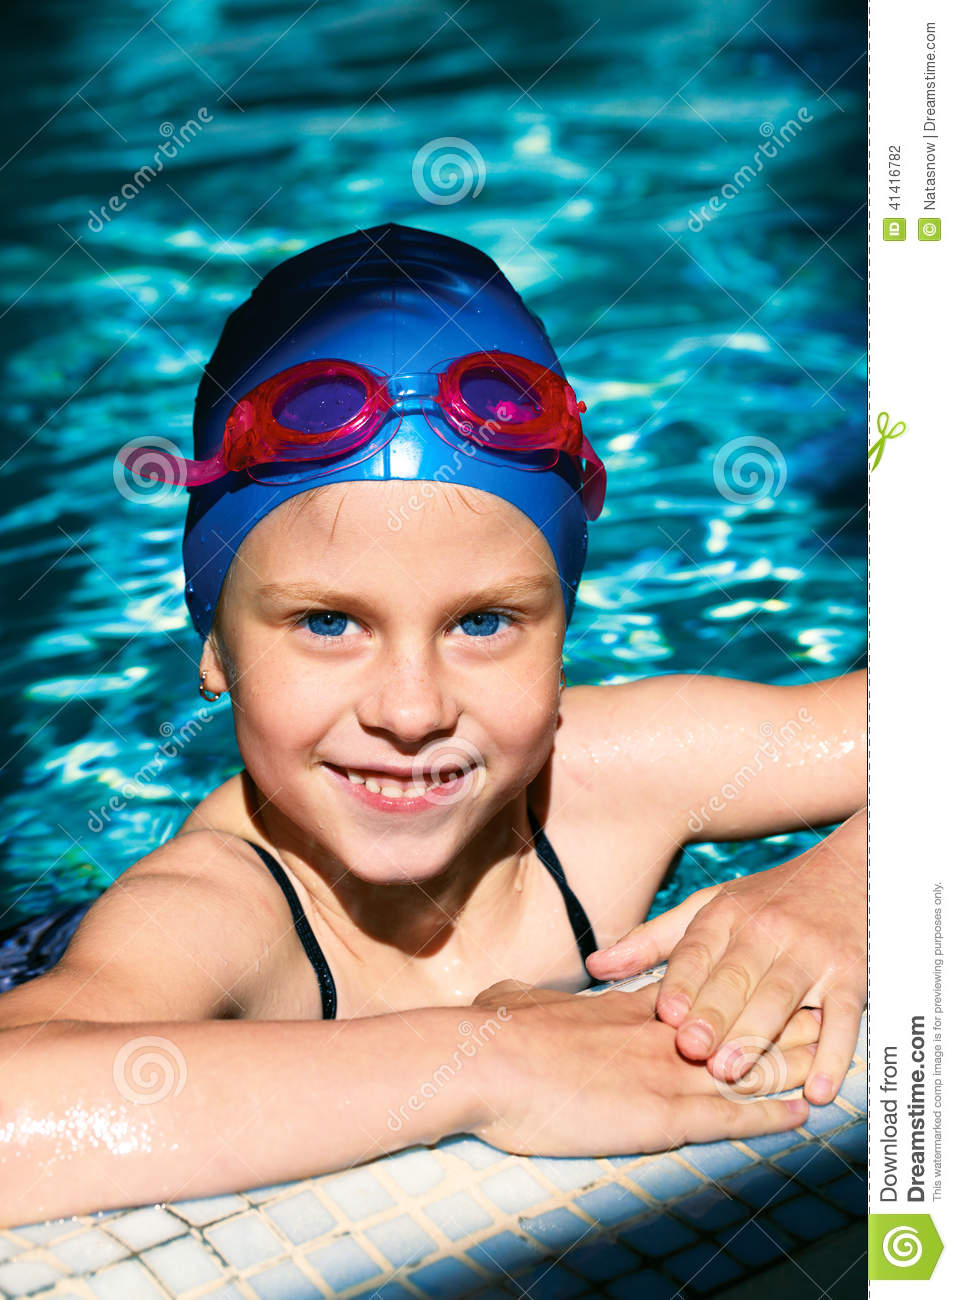 Portrait Of A Kid Laughing In A Swimming Pool Stock Photo Image 41416782